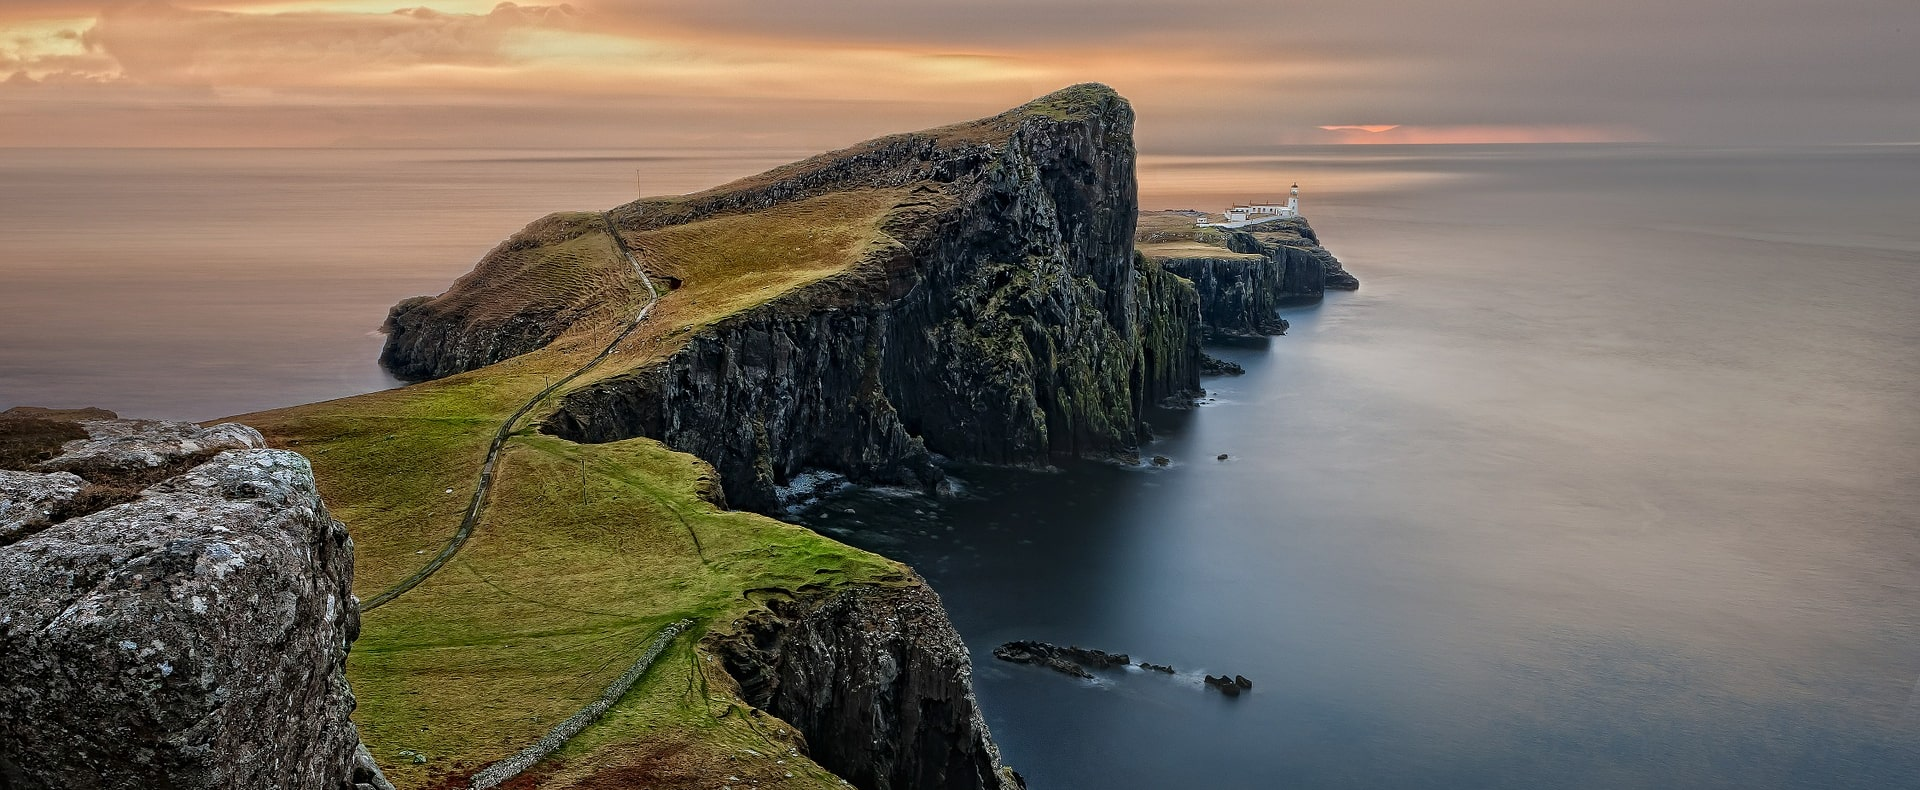 Isle of Skye, United Kingdom Gallery